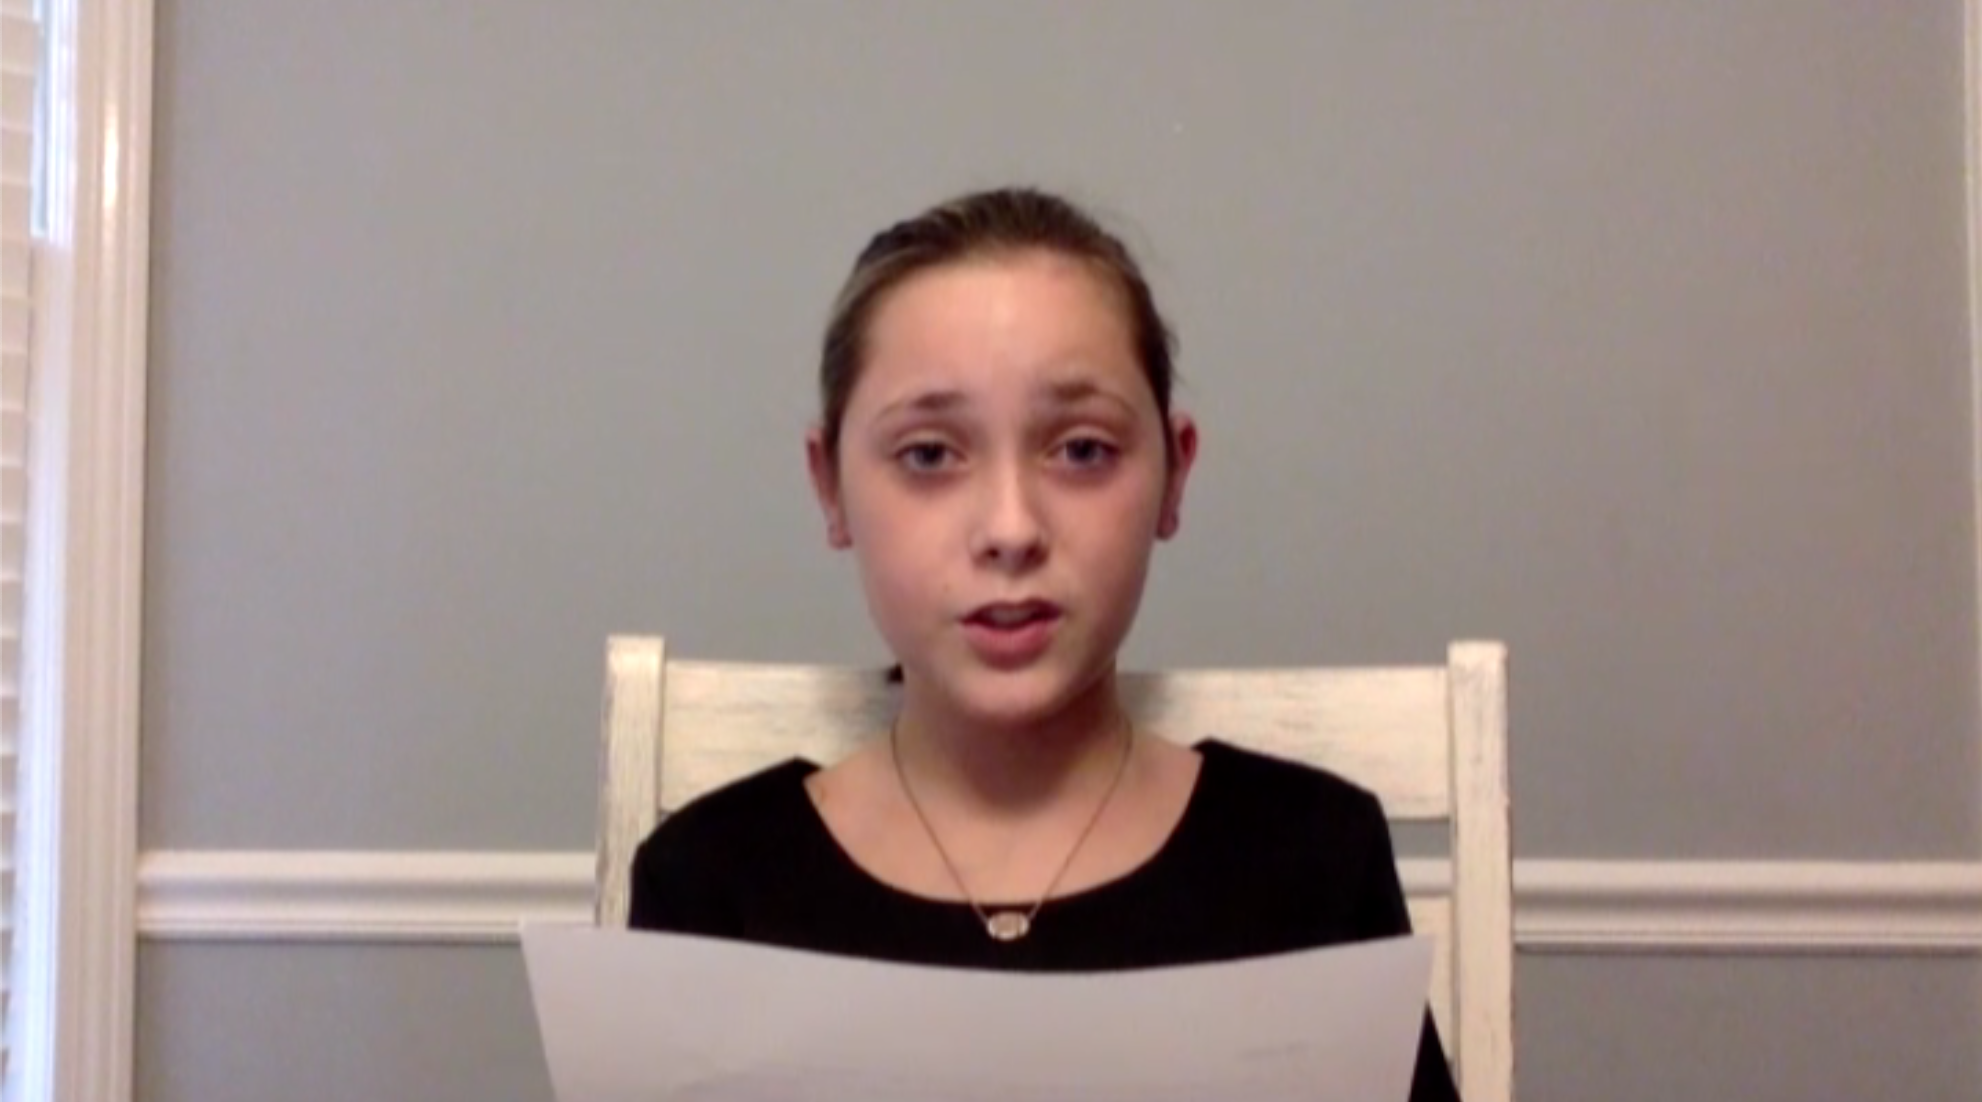 Young child longingly looking into the camera while sitting down and reading from a white piece of paper